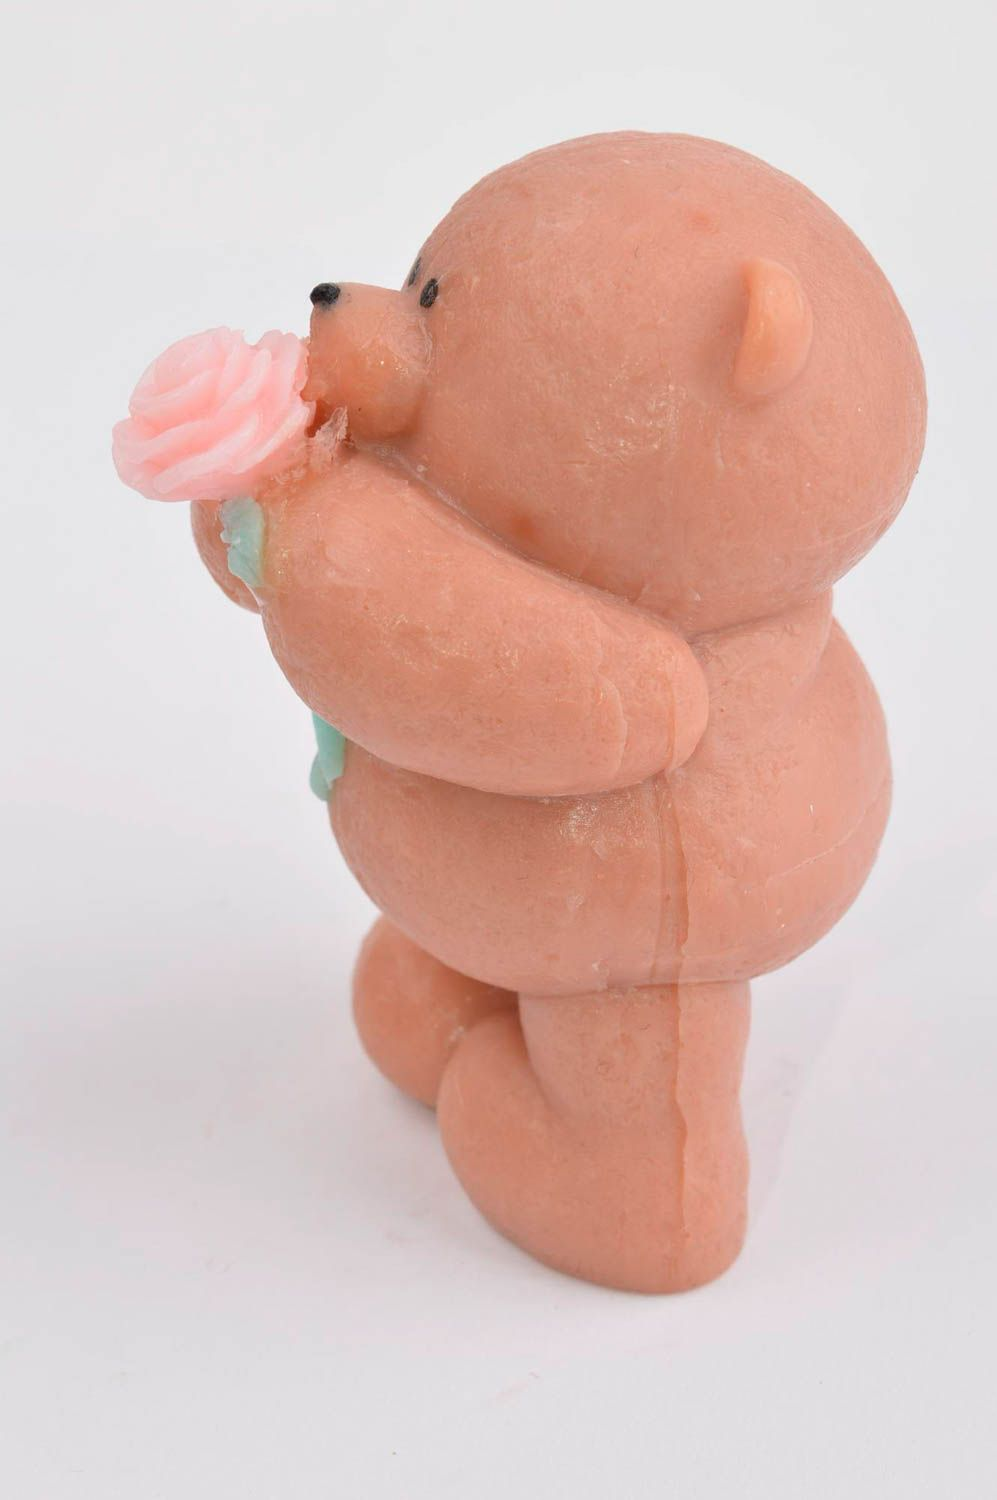 Handmade soap natural soap teddy-bear with rose natural cosmetic aroma soap photo 3